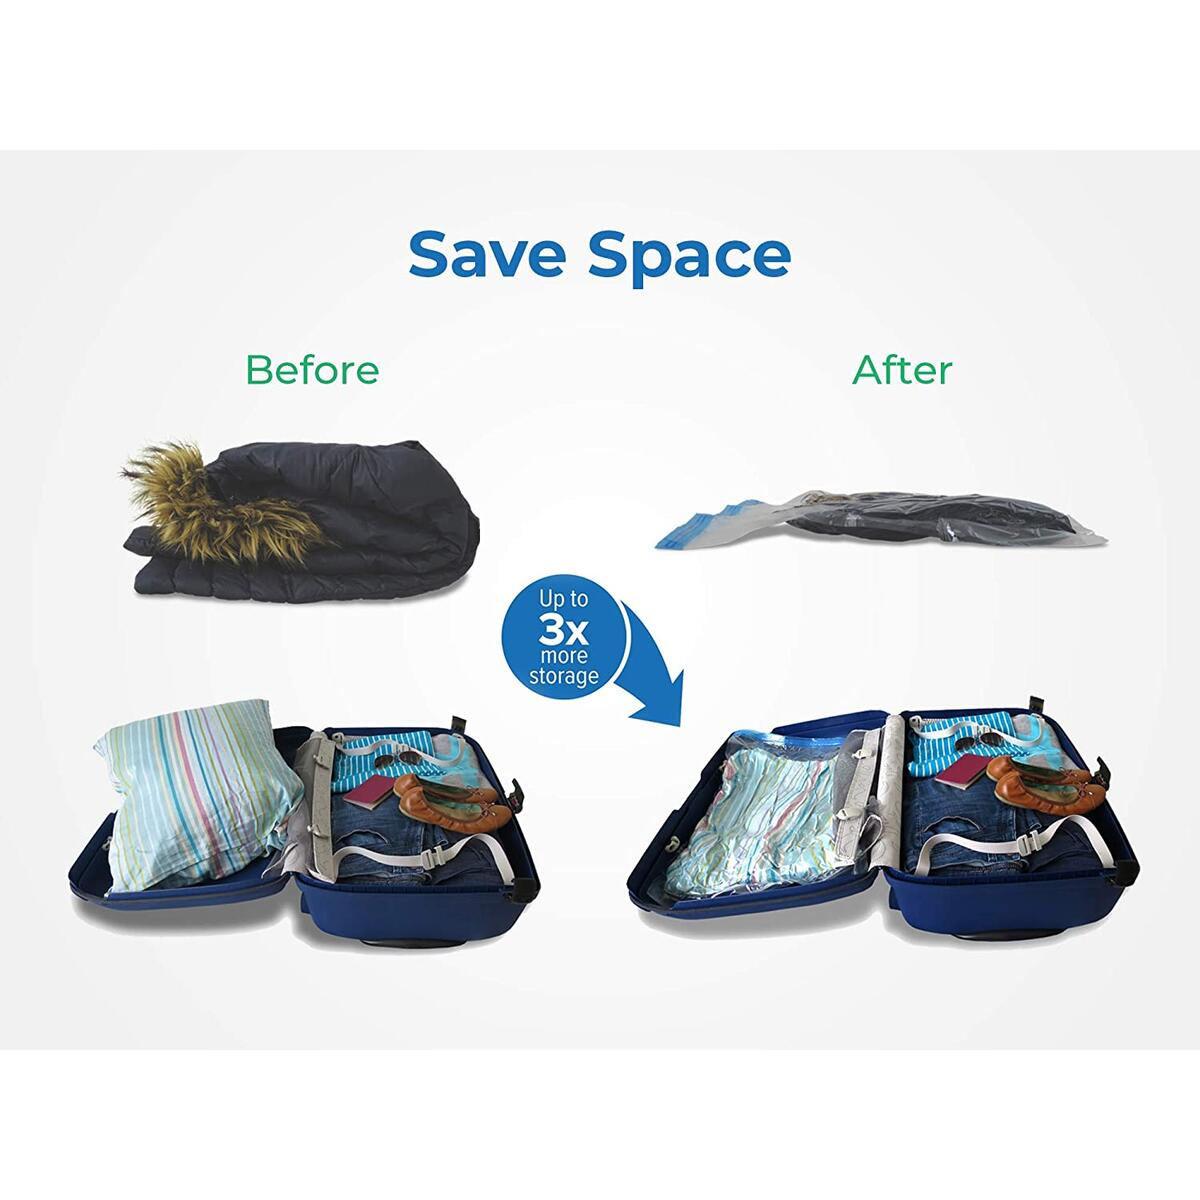 (Travel) Space Saver Bags